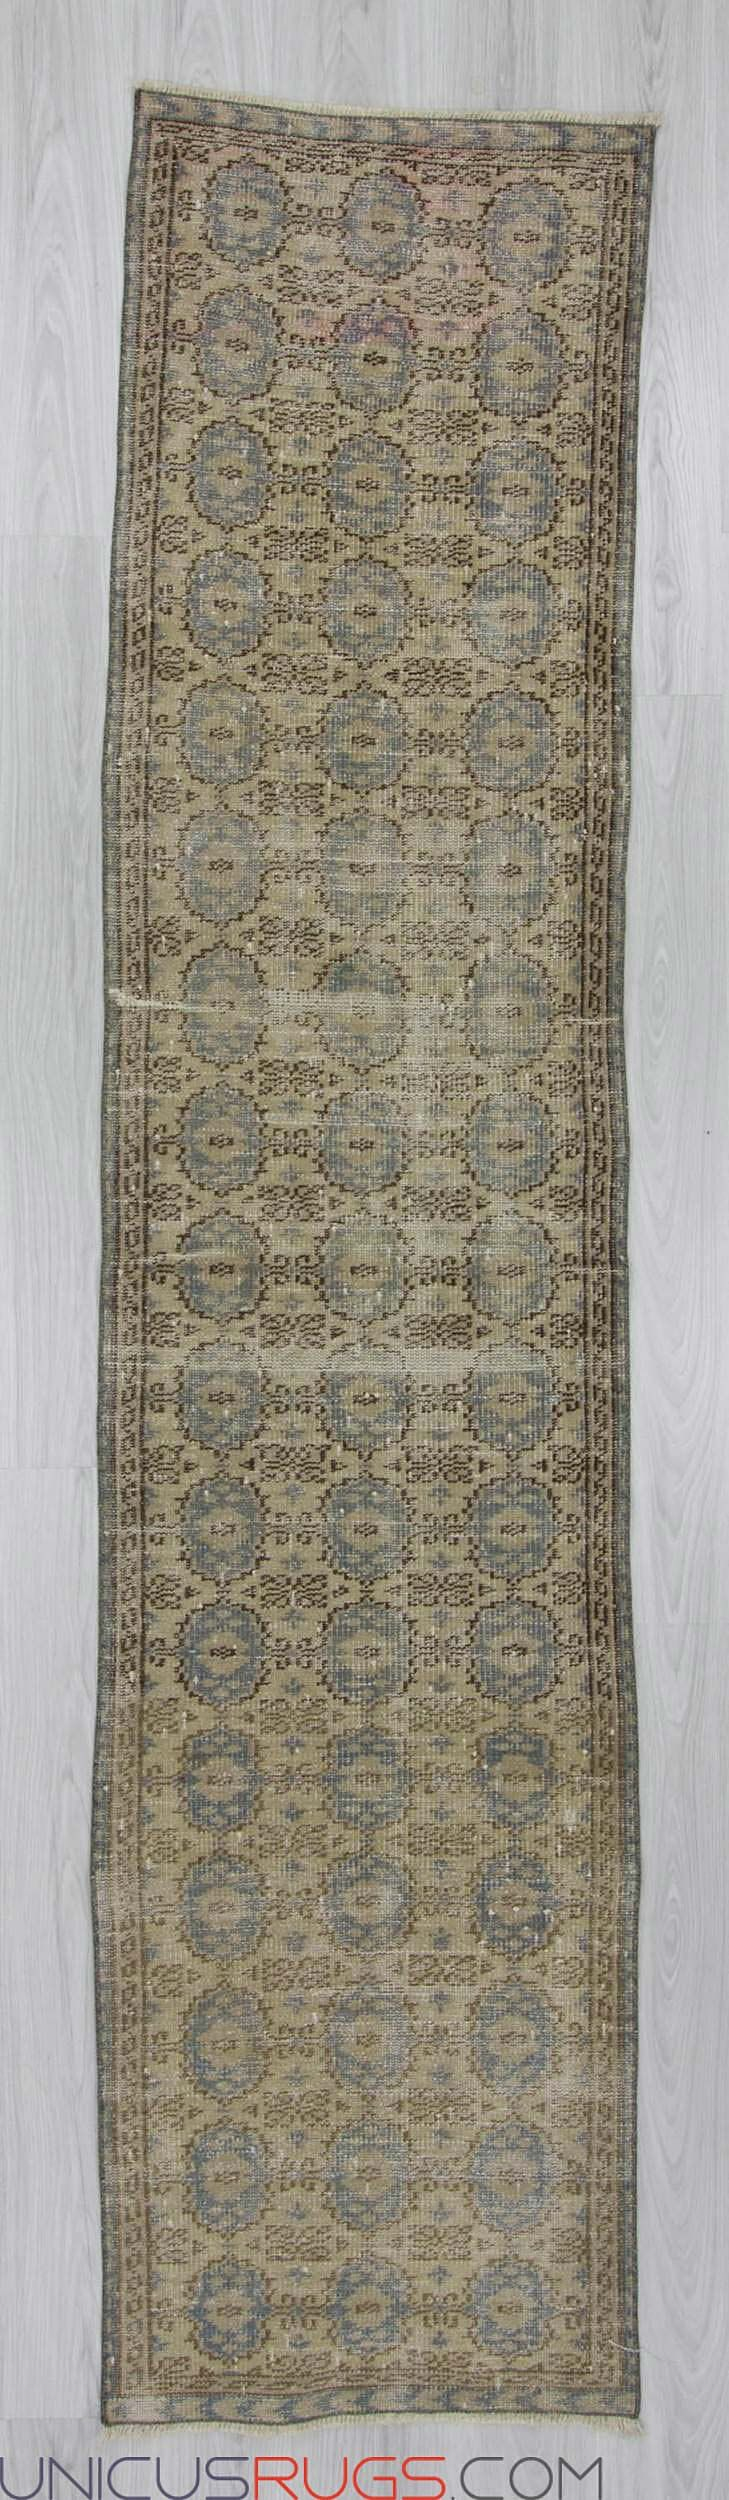 """Vintage decorative runner rug from Isparta region of Turkey. In very good condition. Approximately 40-50 years old. Width: 2' 3"""" - Length: 9' 10"""" RUNNERS"""